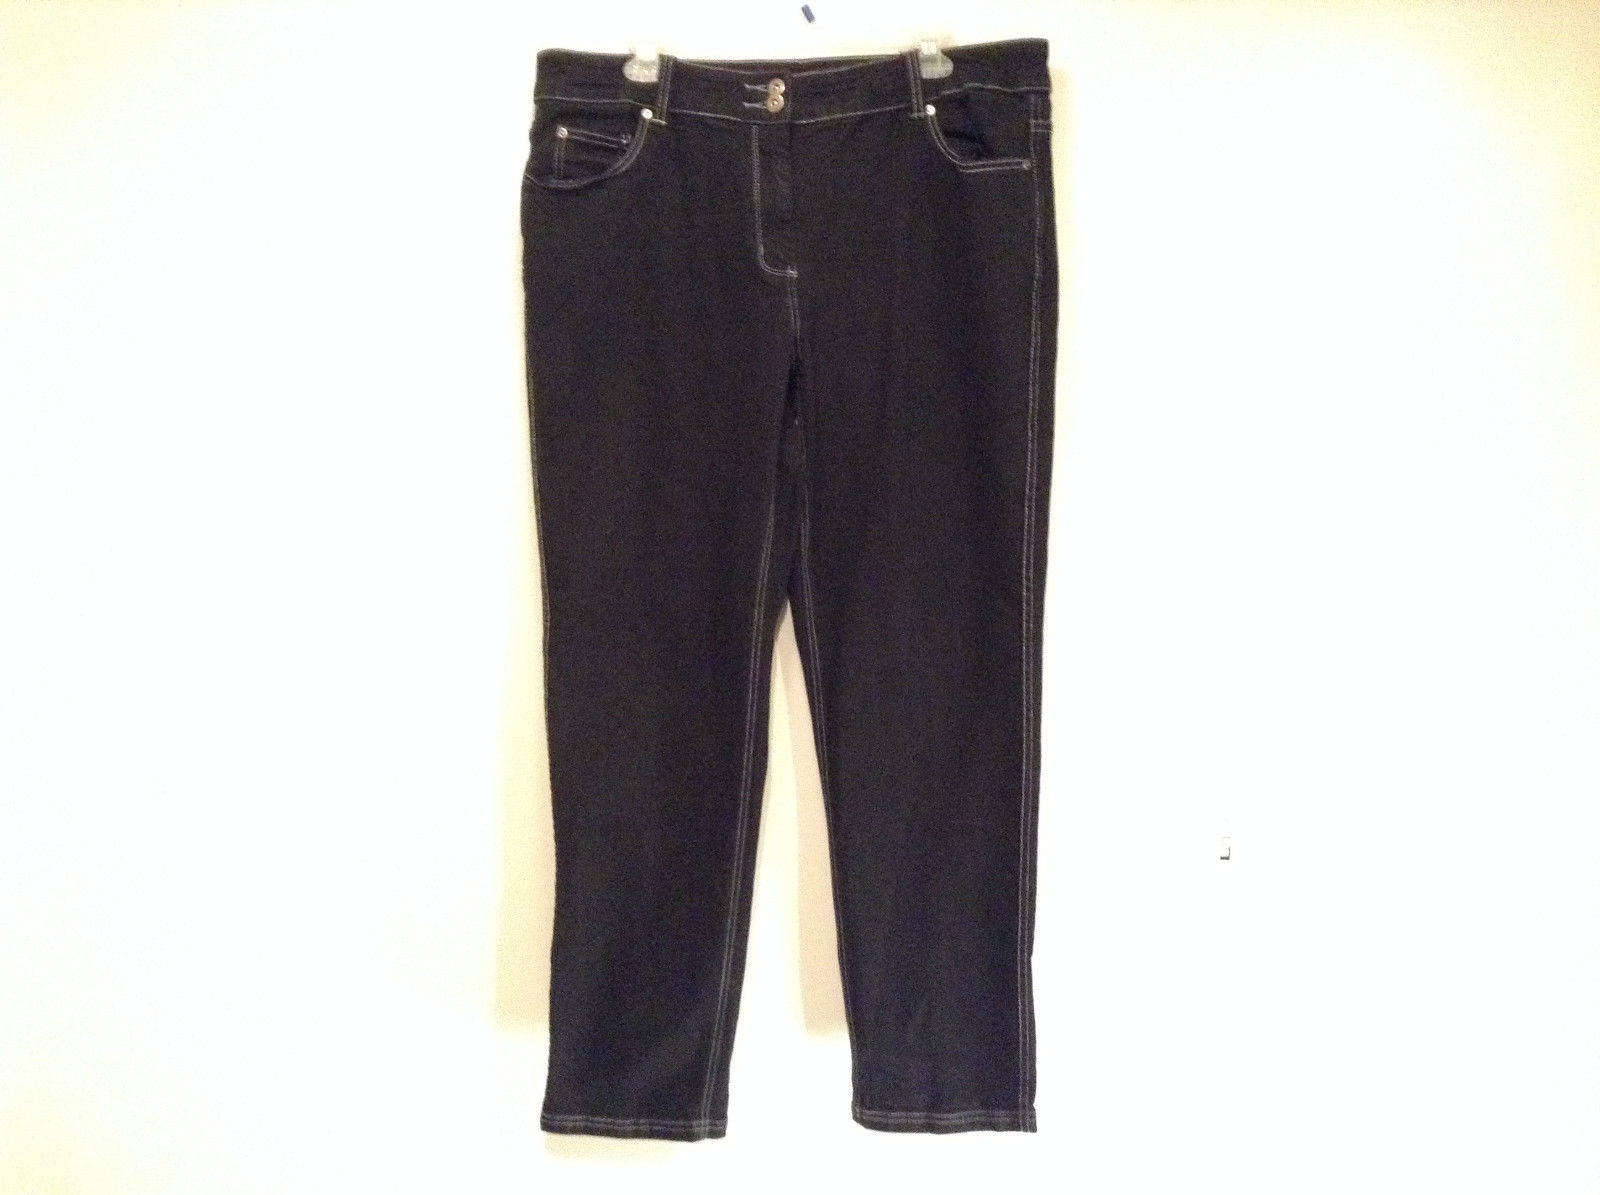 Spirited Black Jeans Size 18W Stretchy Waist Zipper Button Closure Pockets